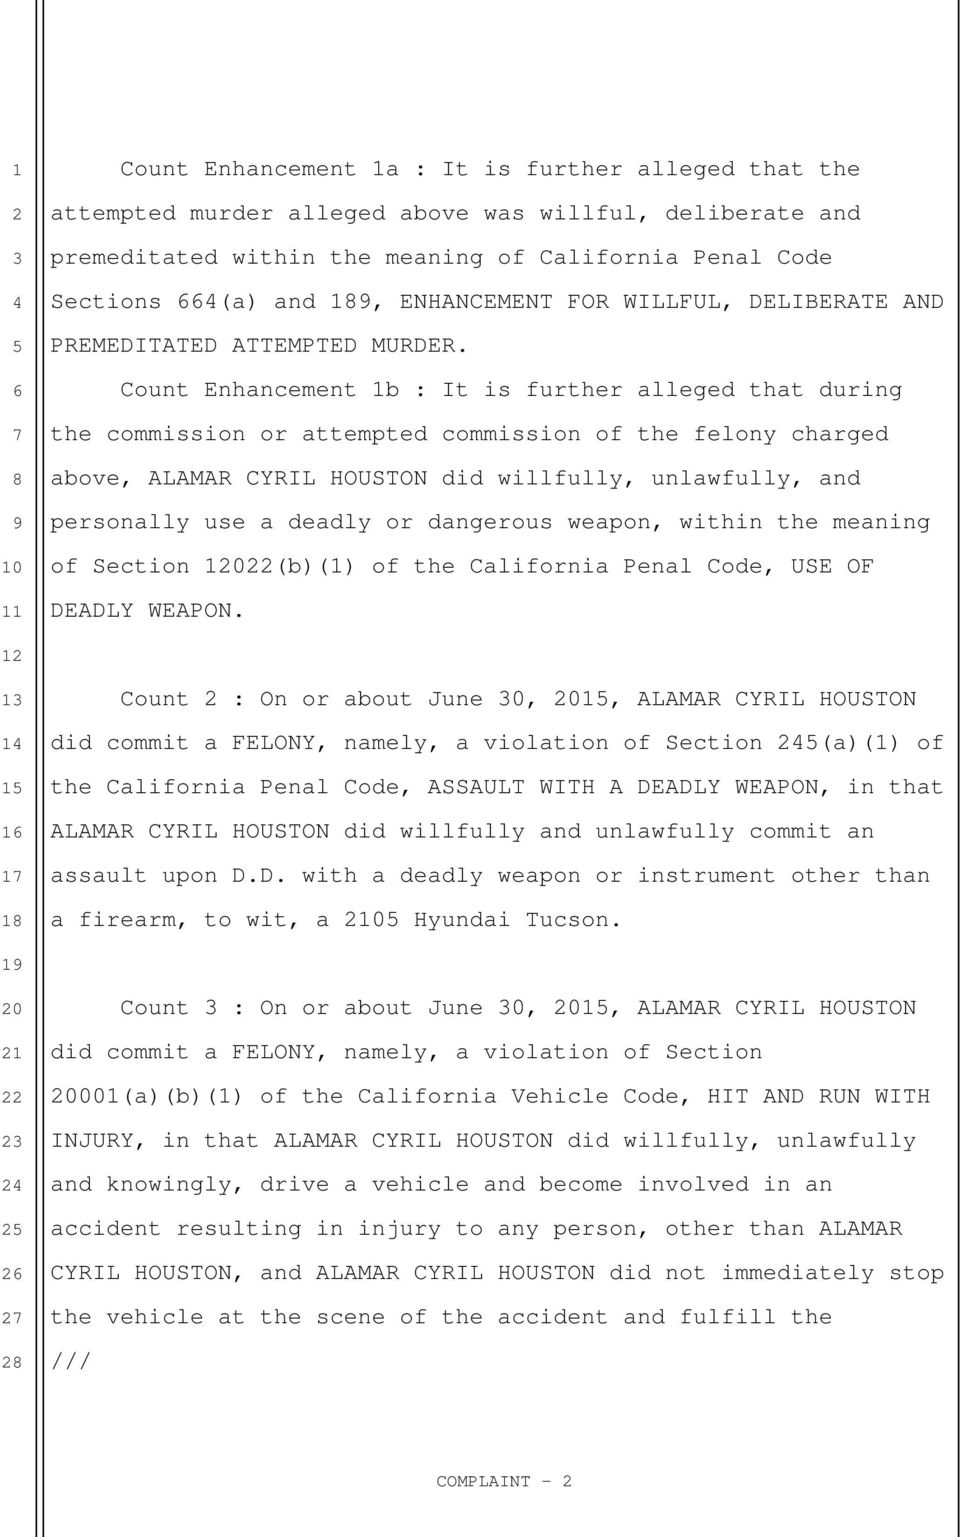 Count Enhancement 1b : It is further alleged that during the commission or attempted commission of the felony charged above, ALAMAR CYRIL HOUSTON did willfully, unlawfully, and personally use a